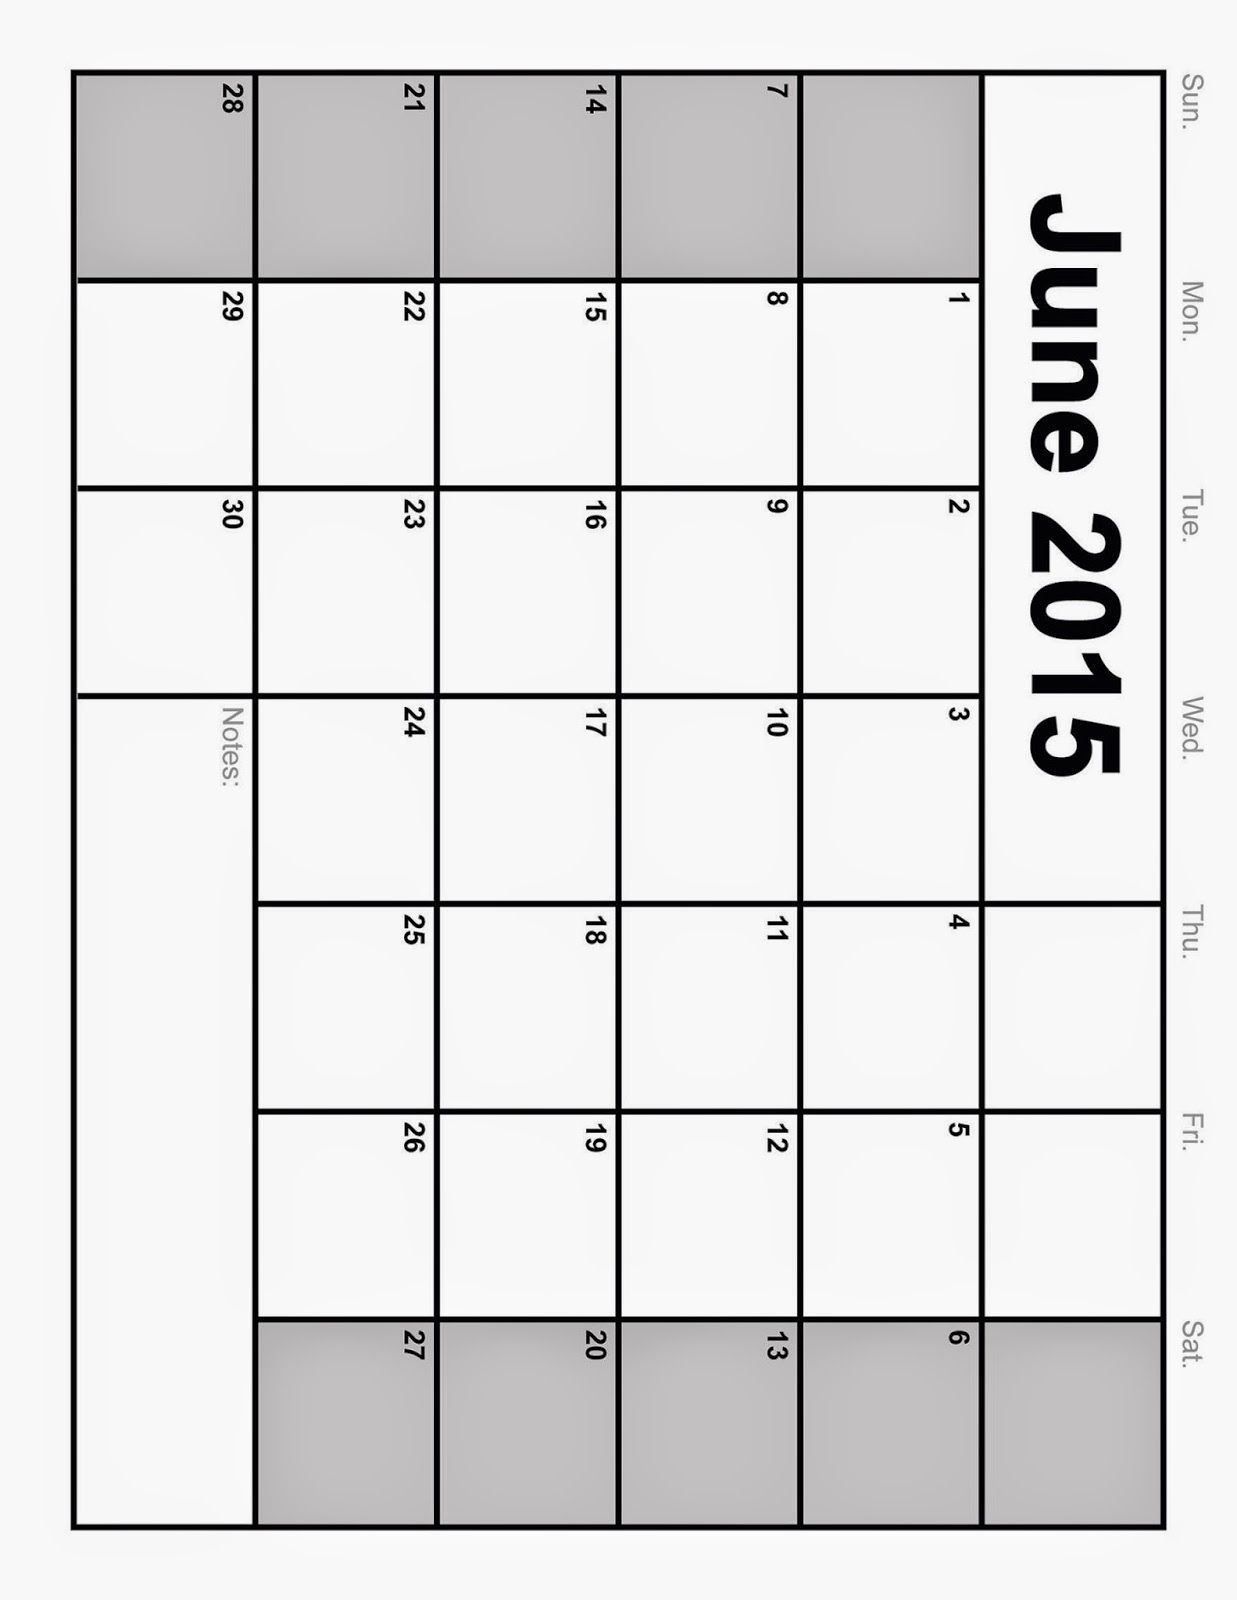 ... Calendar Template June Weekly 2013/page/2 | New Calendar Template Site